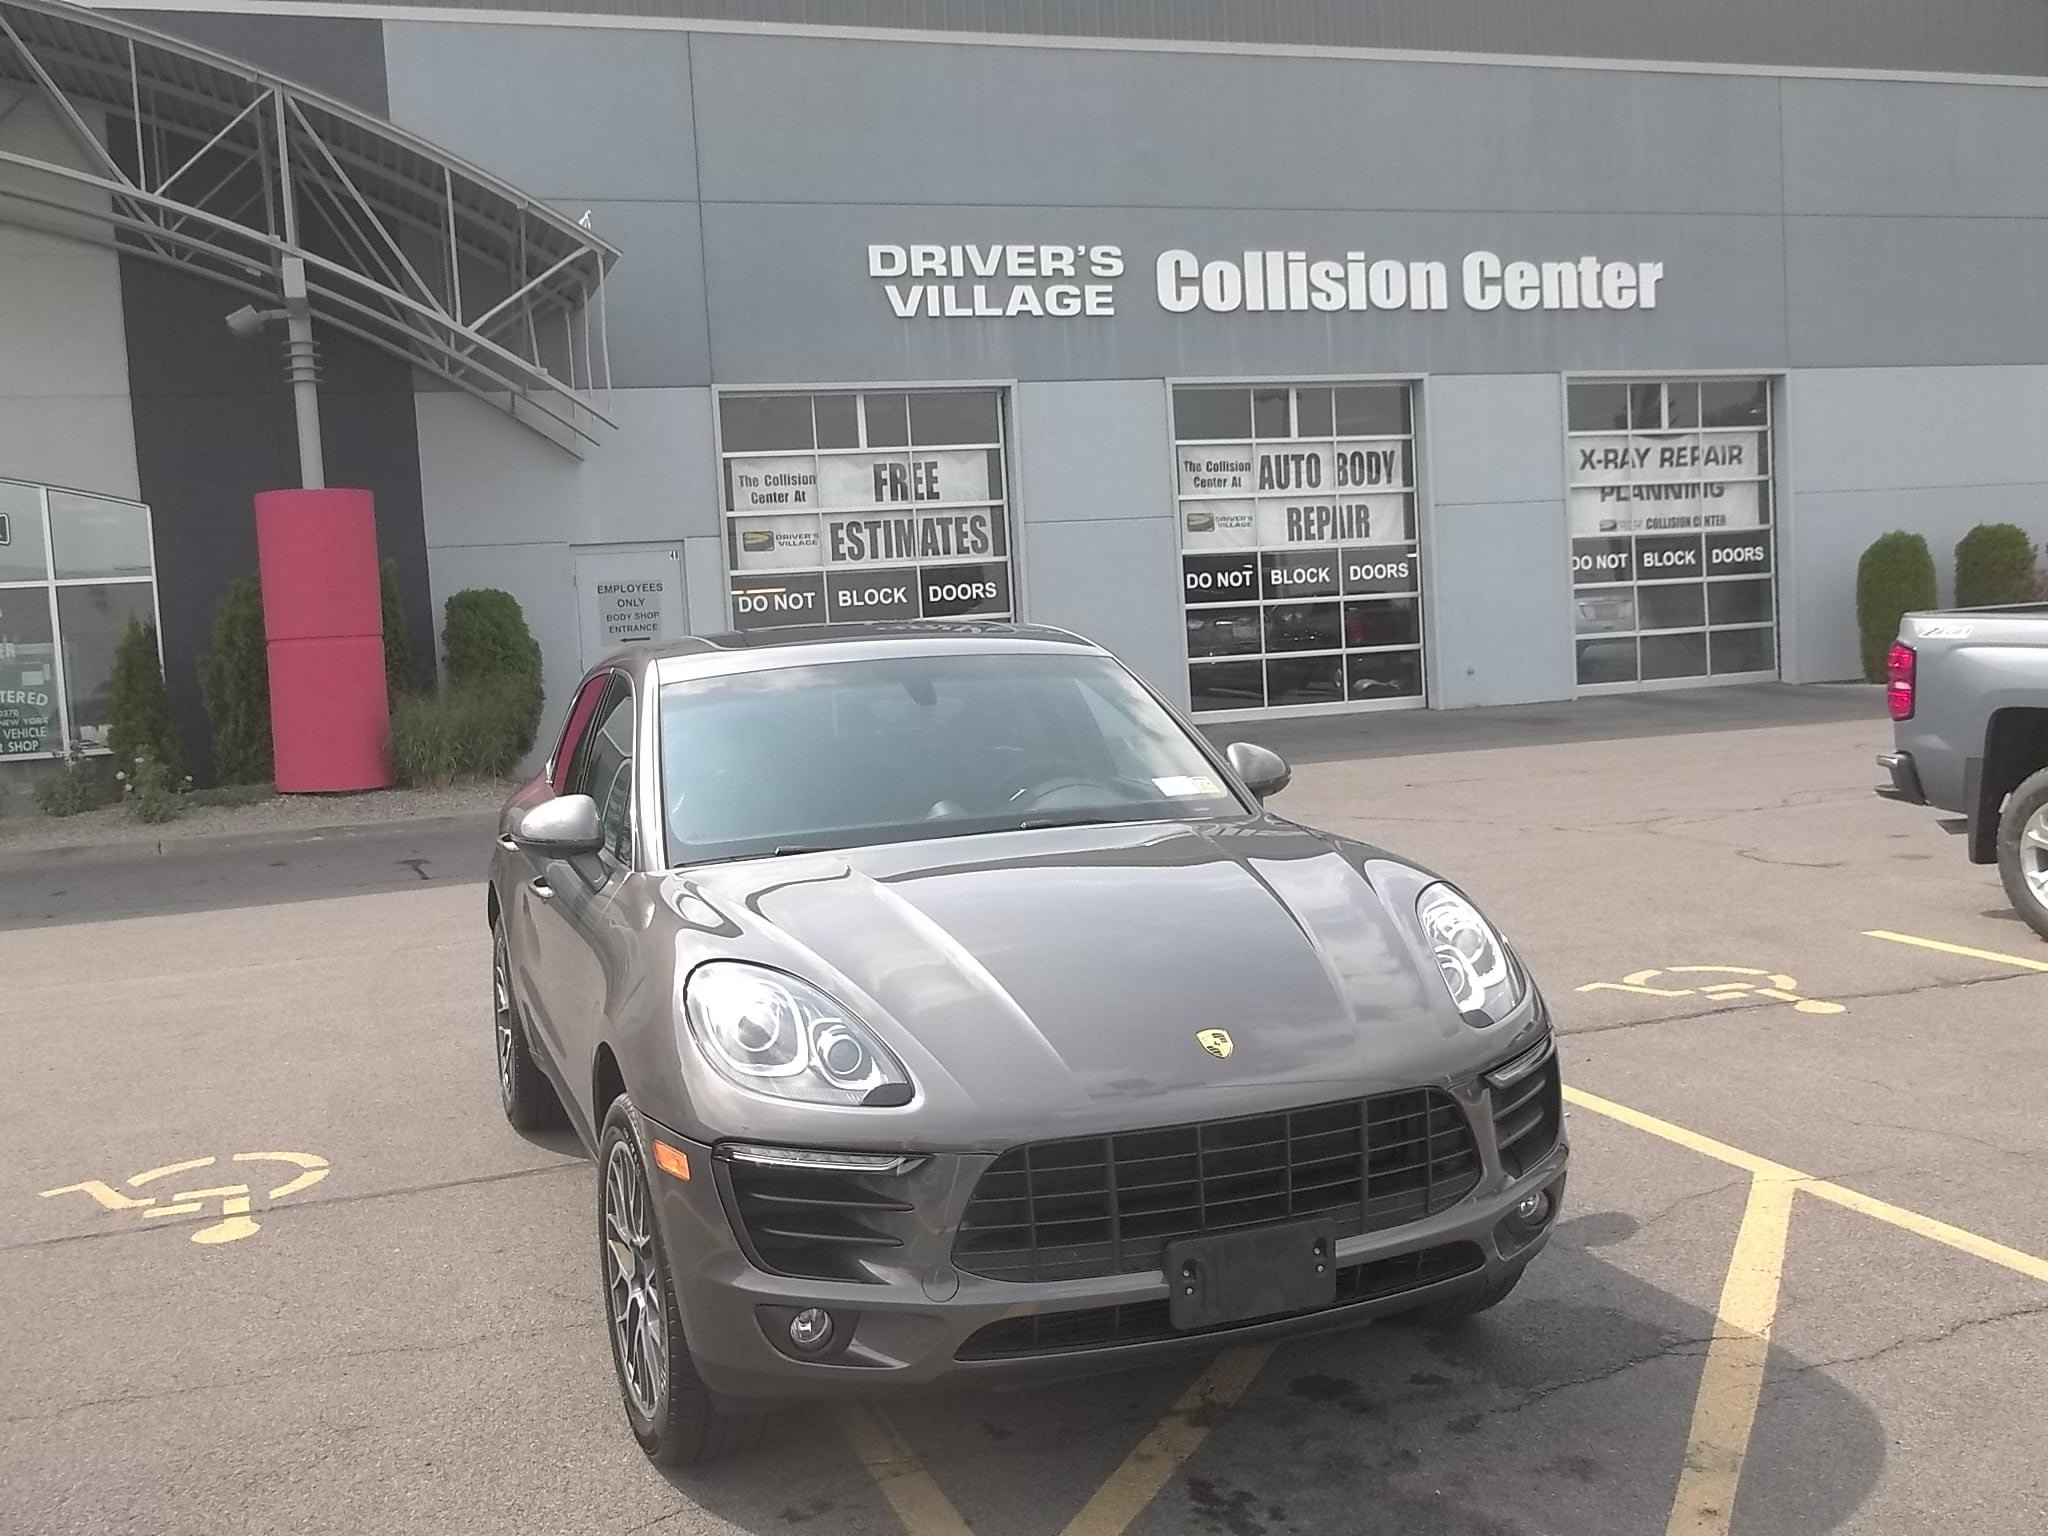 Cicero Porsche Collision Center Syracuse Area Porsche